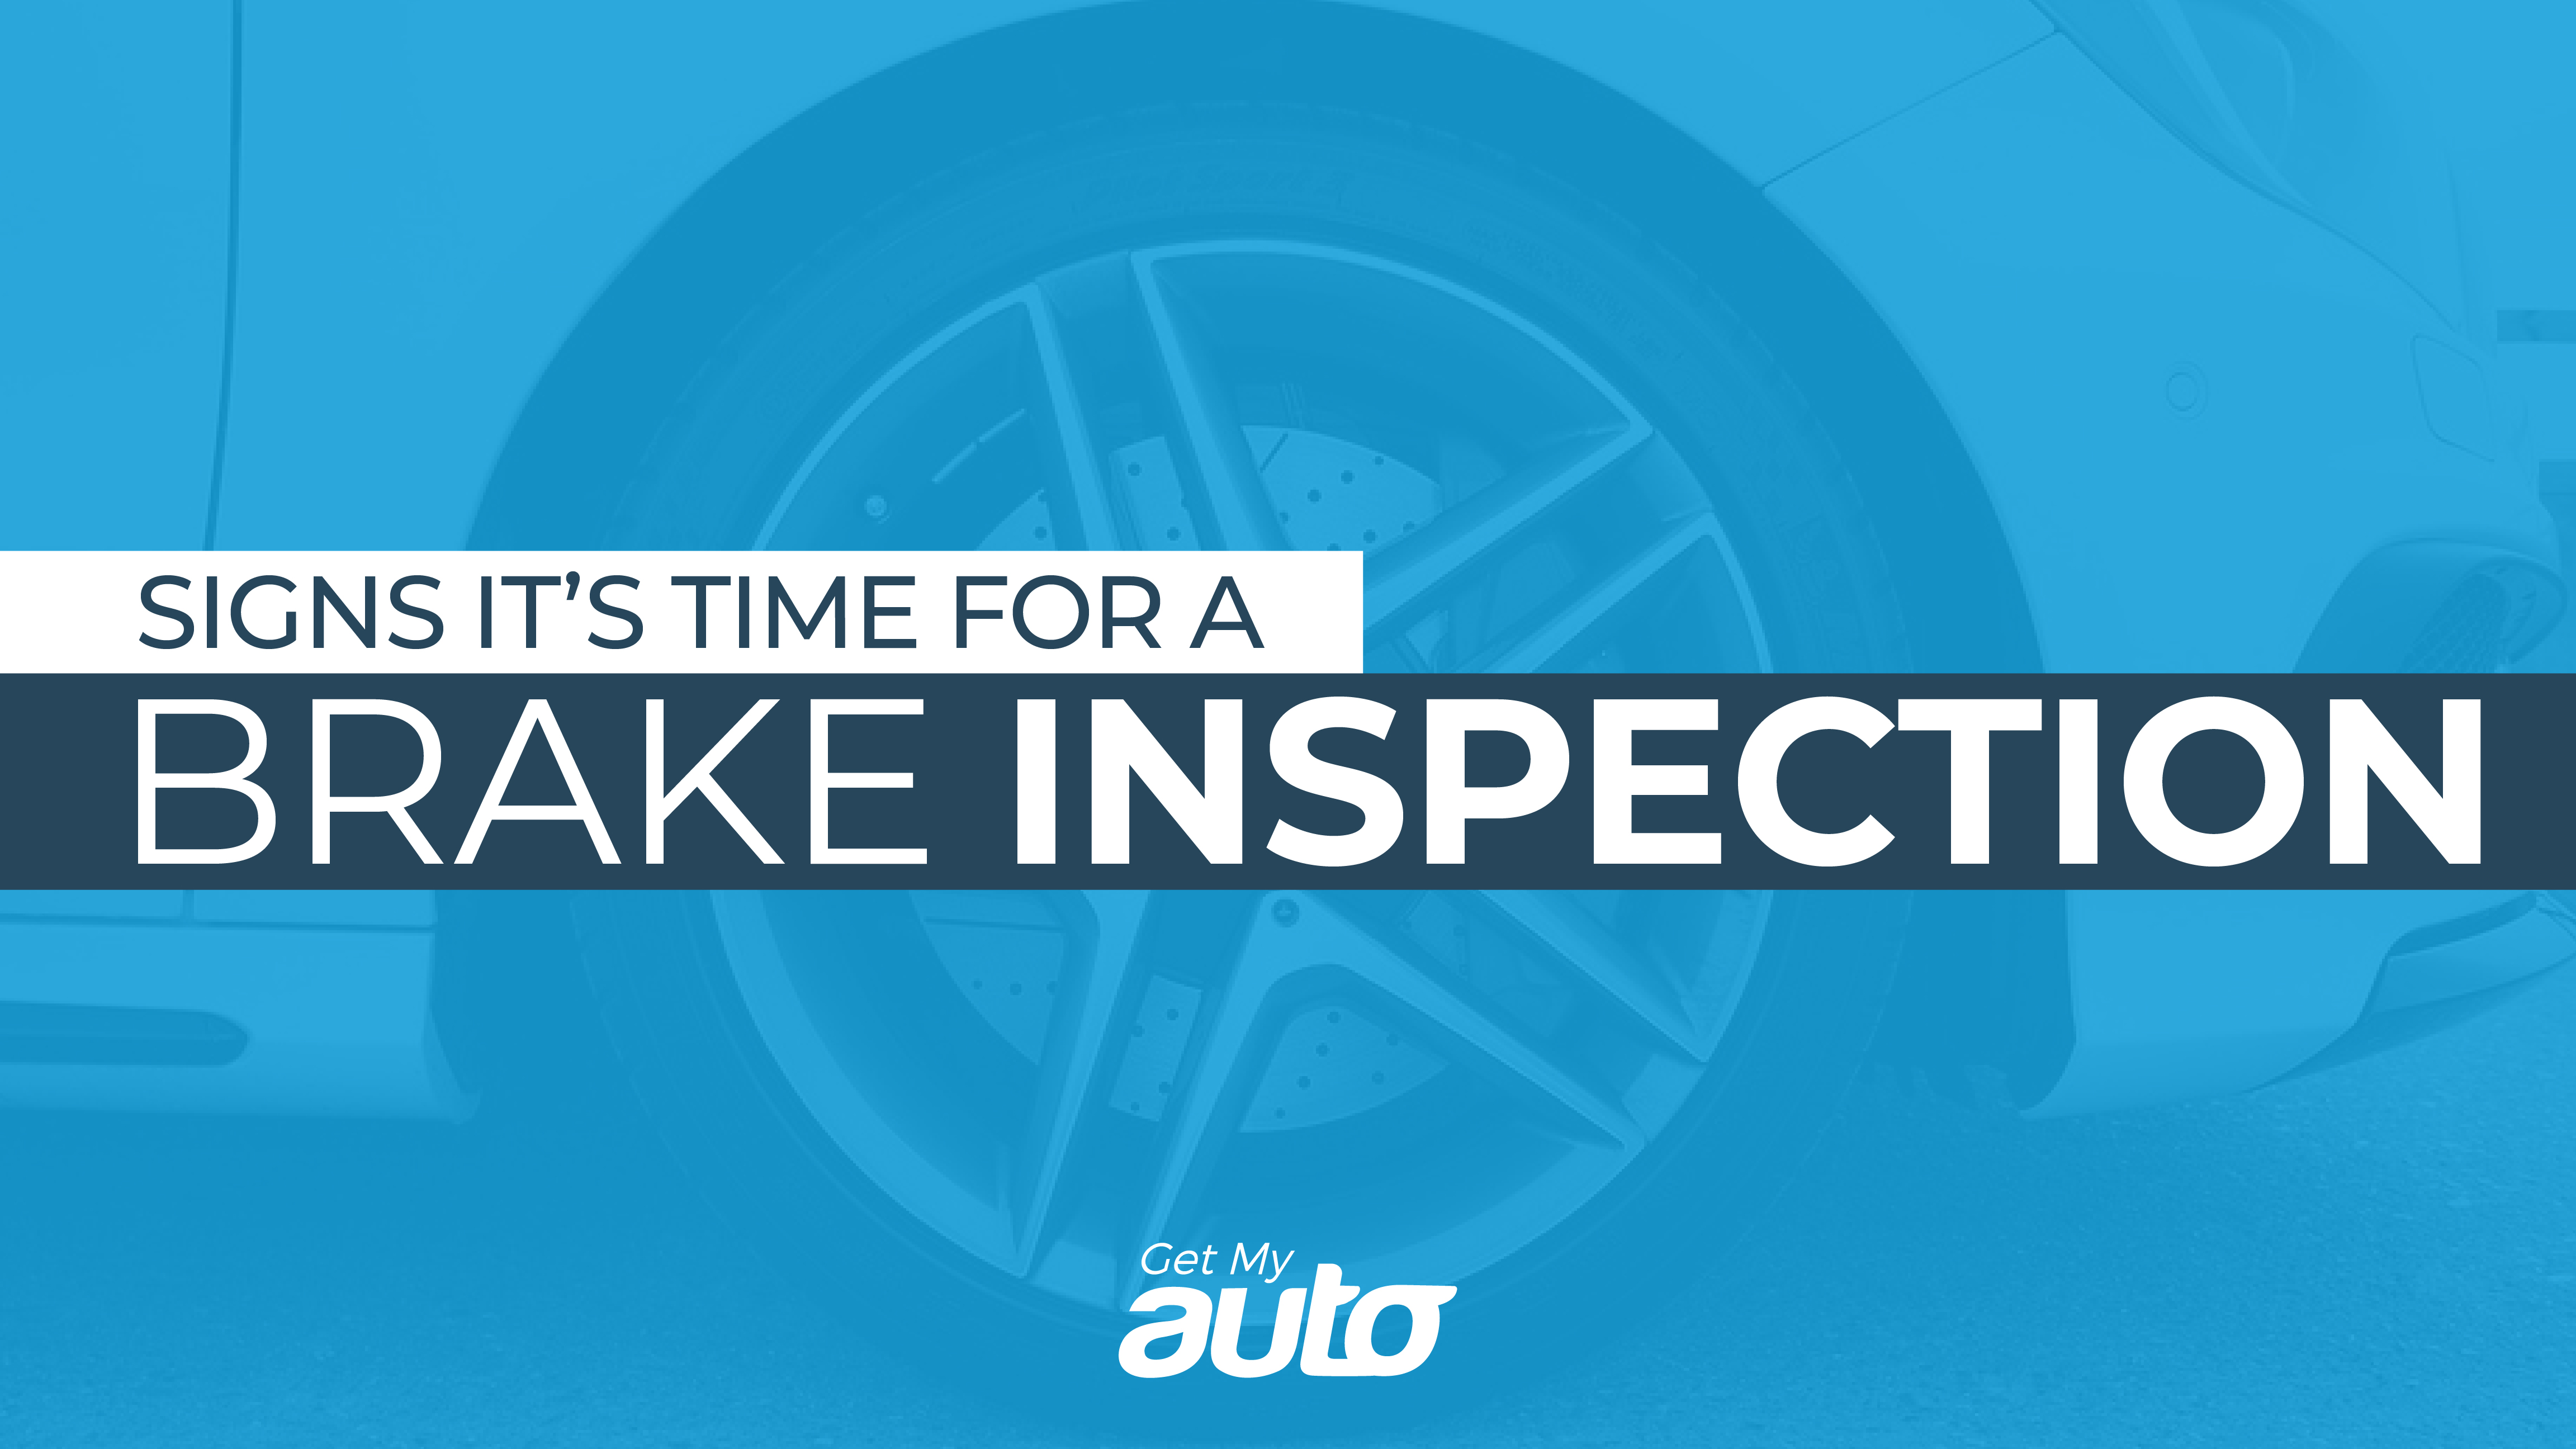 Signs It's Time for a Brake Inspection GetMyAuto